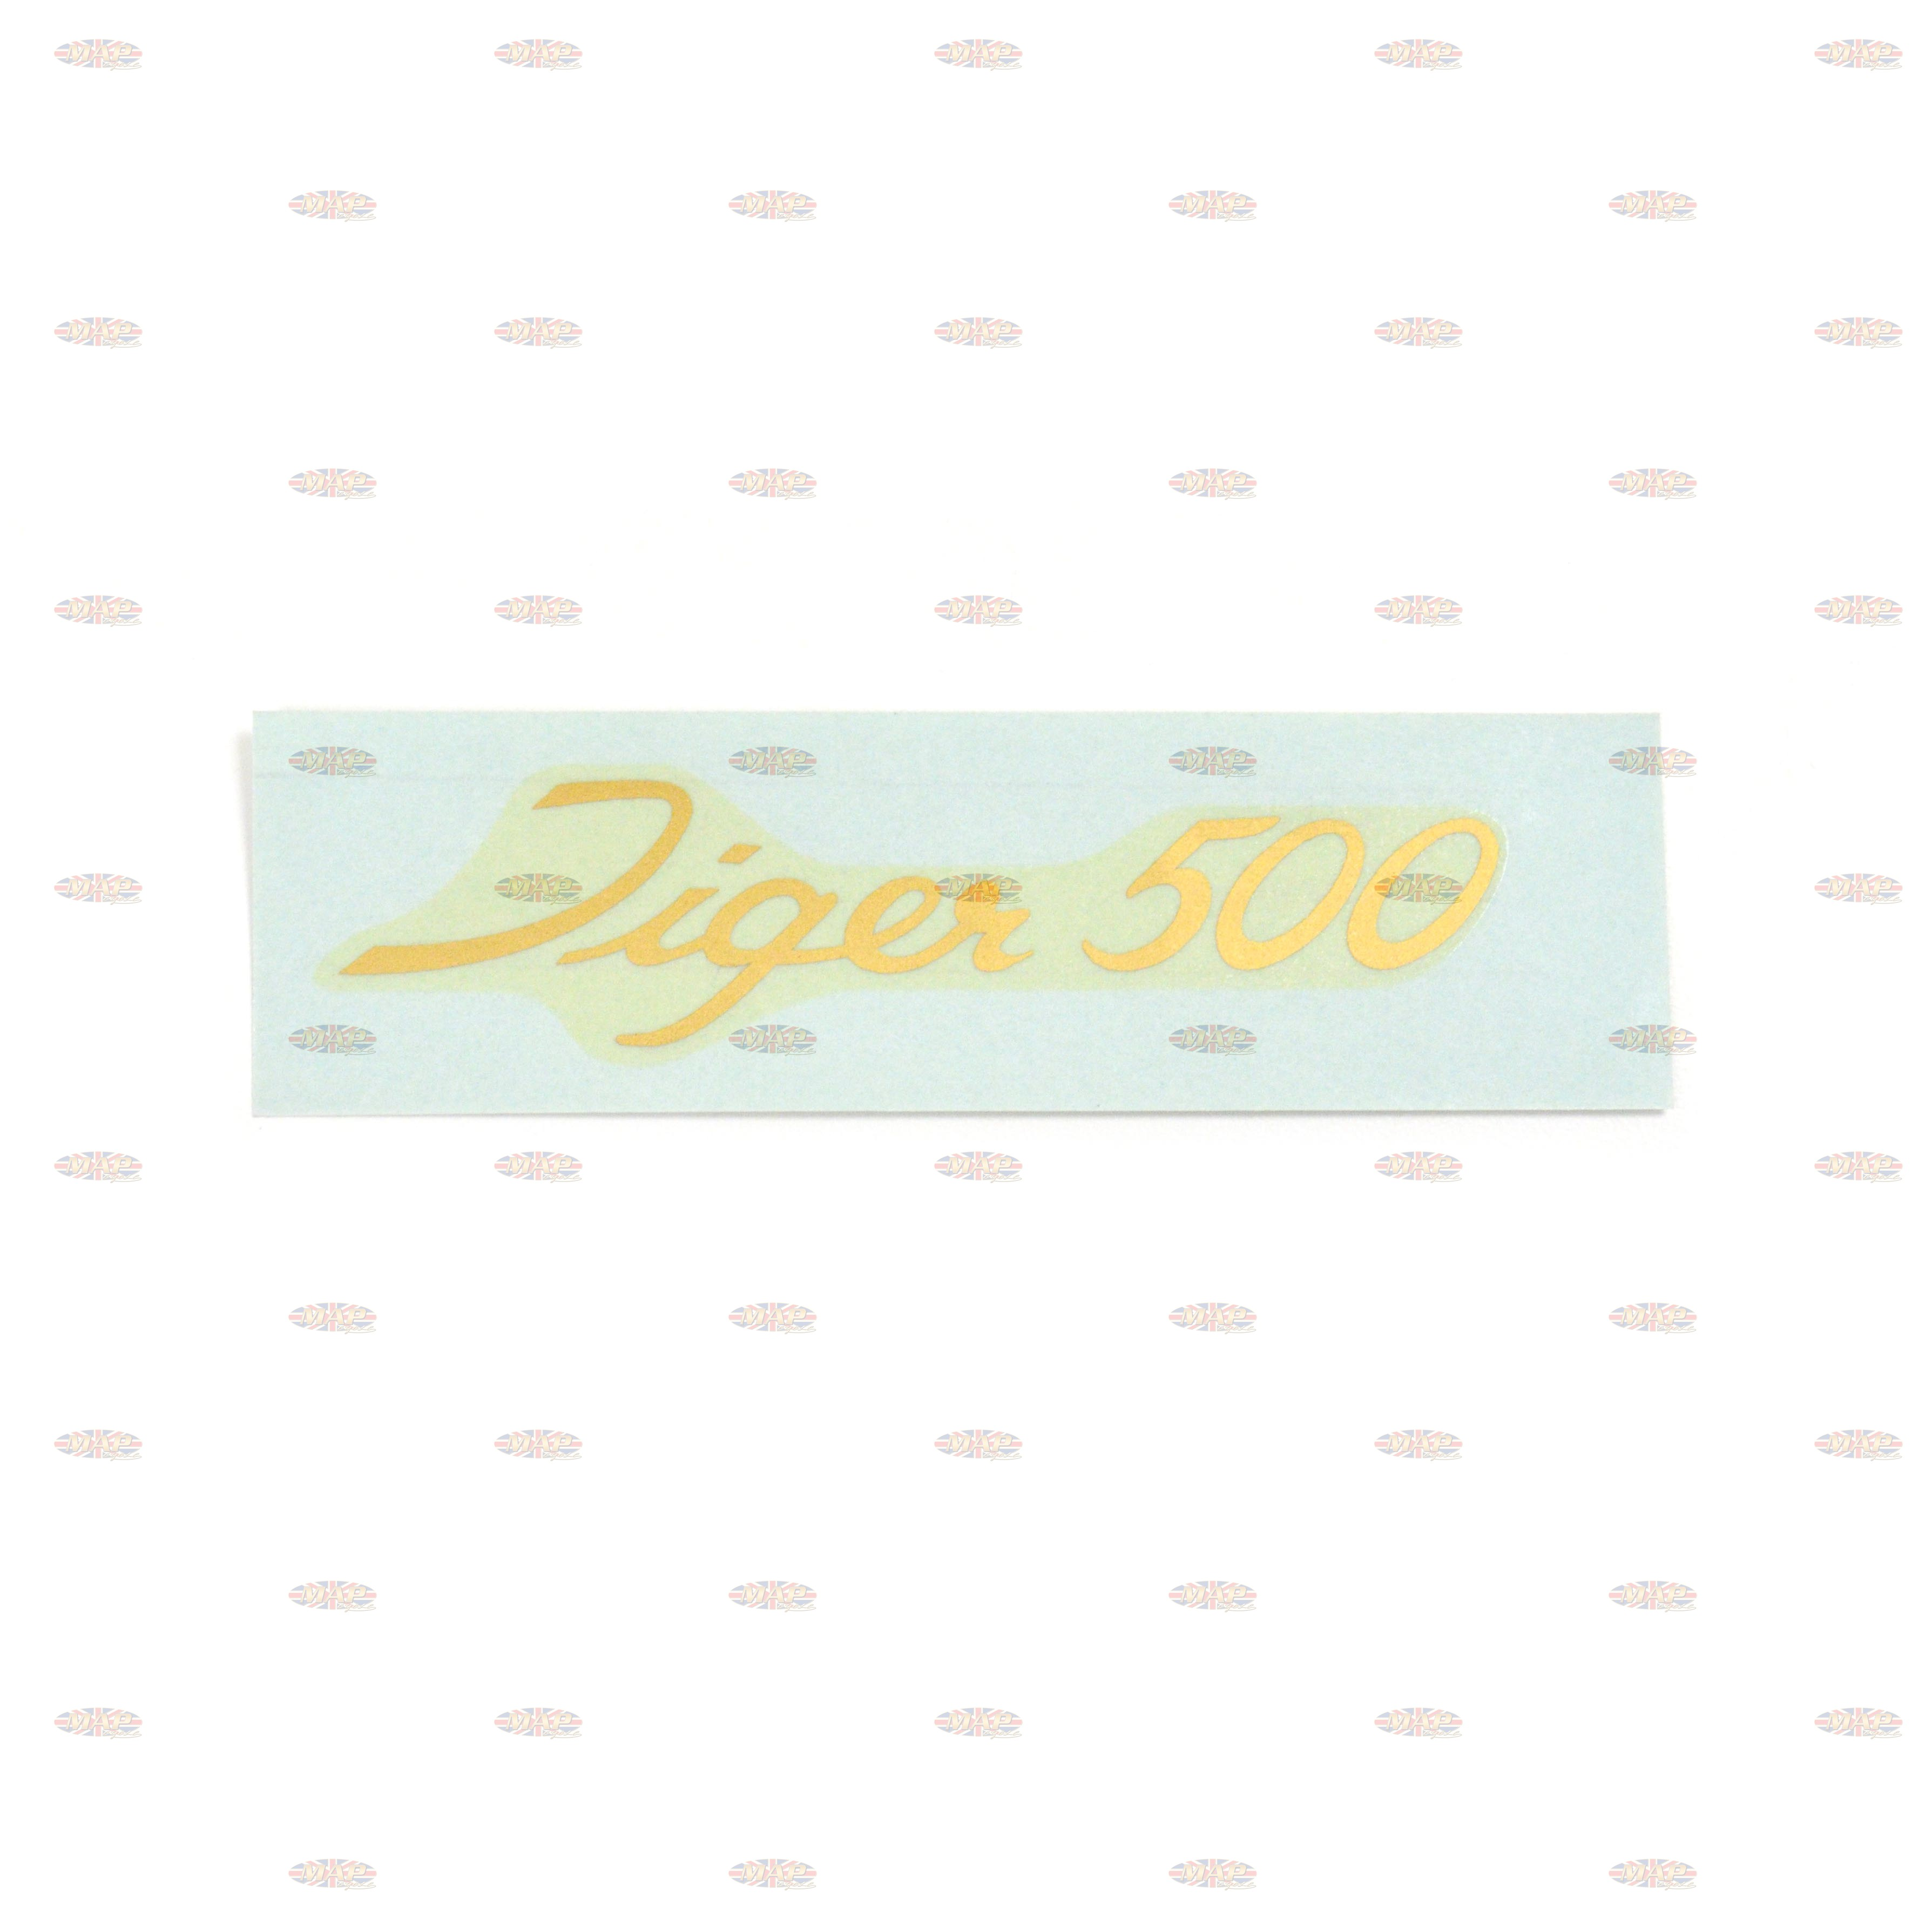 DECAL/  TIGER 500  (LARGE SCRIPT) 60-1917